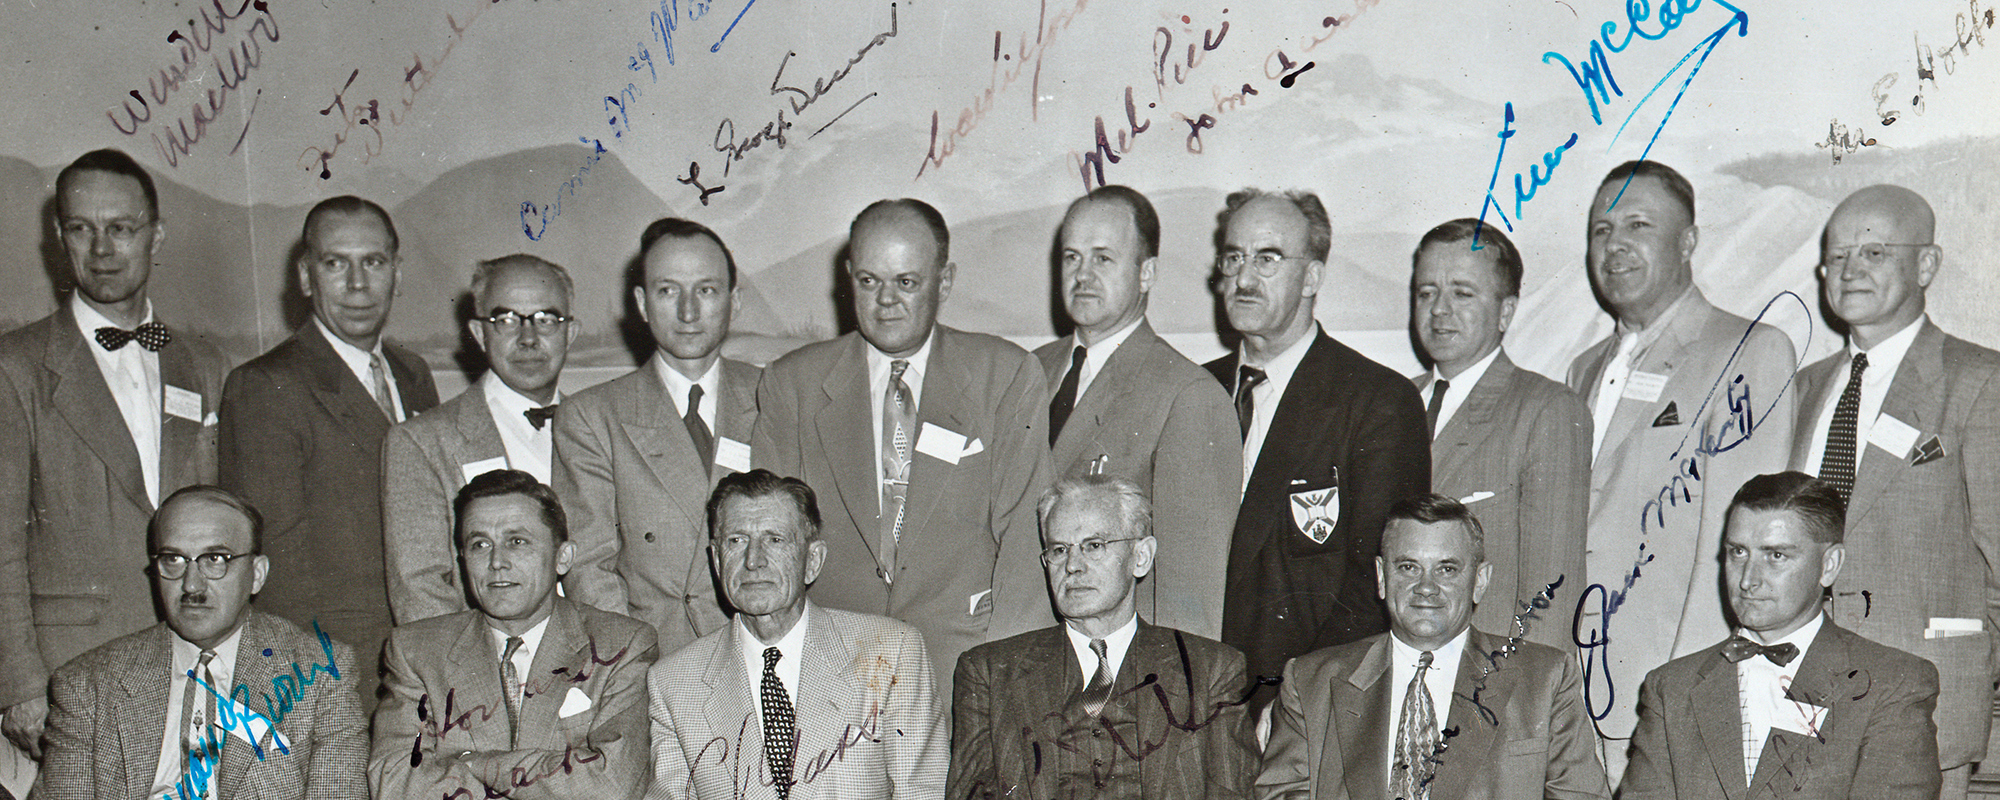 Black and white group image of a group of attendees from the CFPC's first inaugural meeting